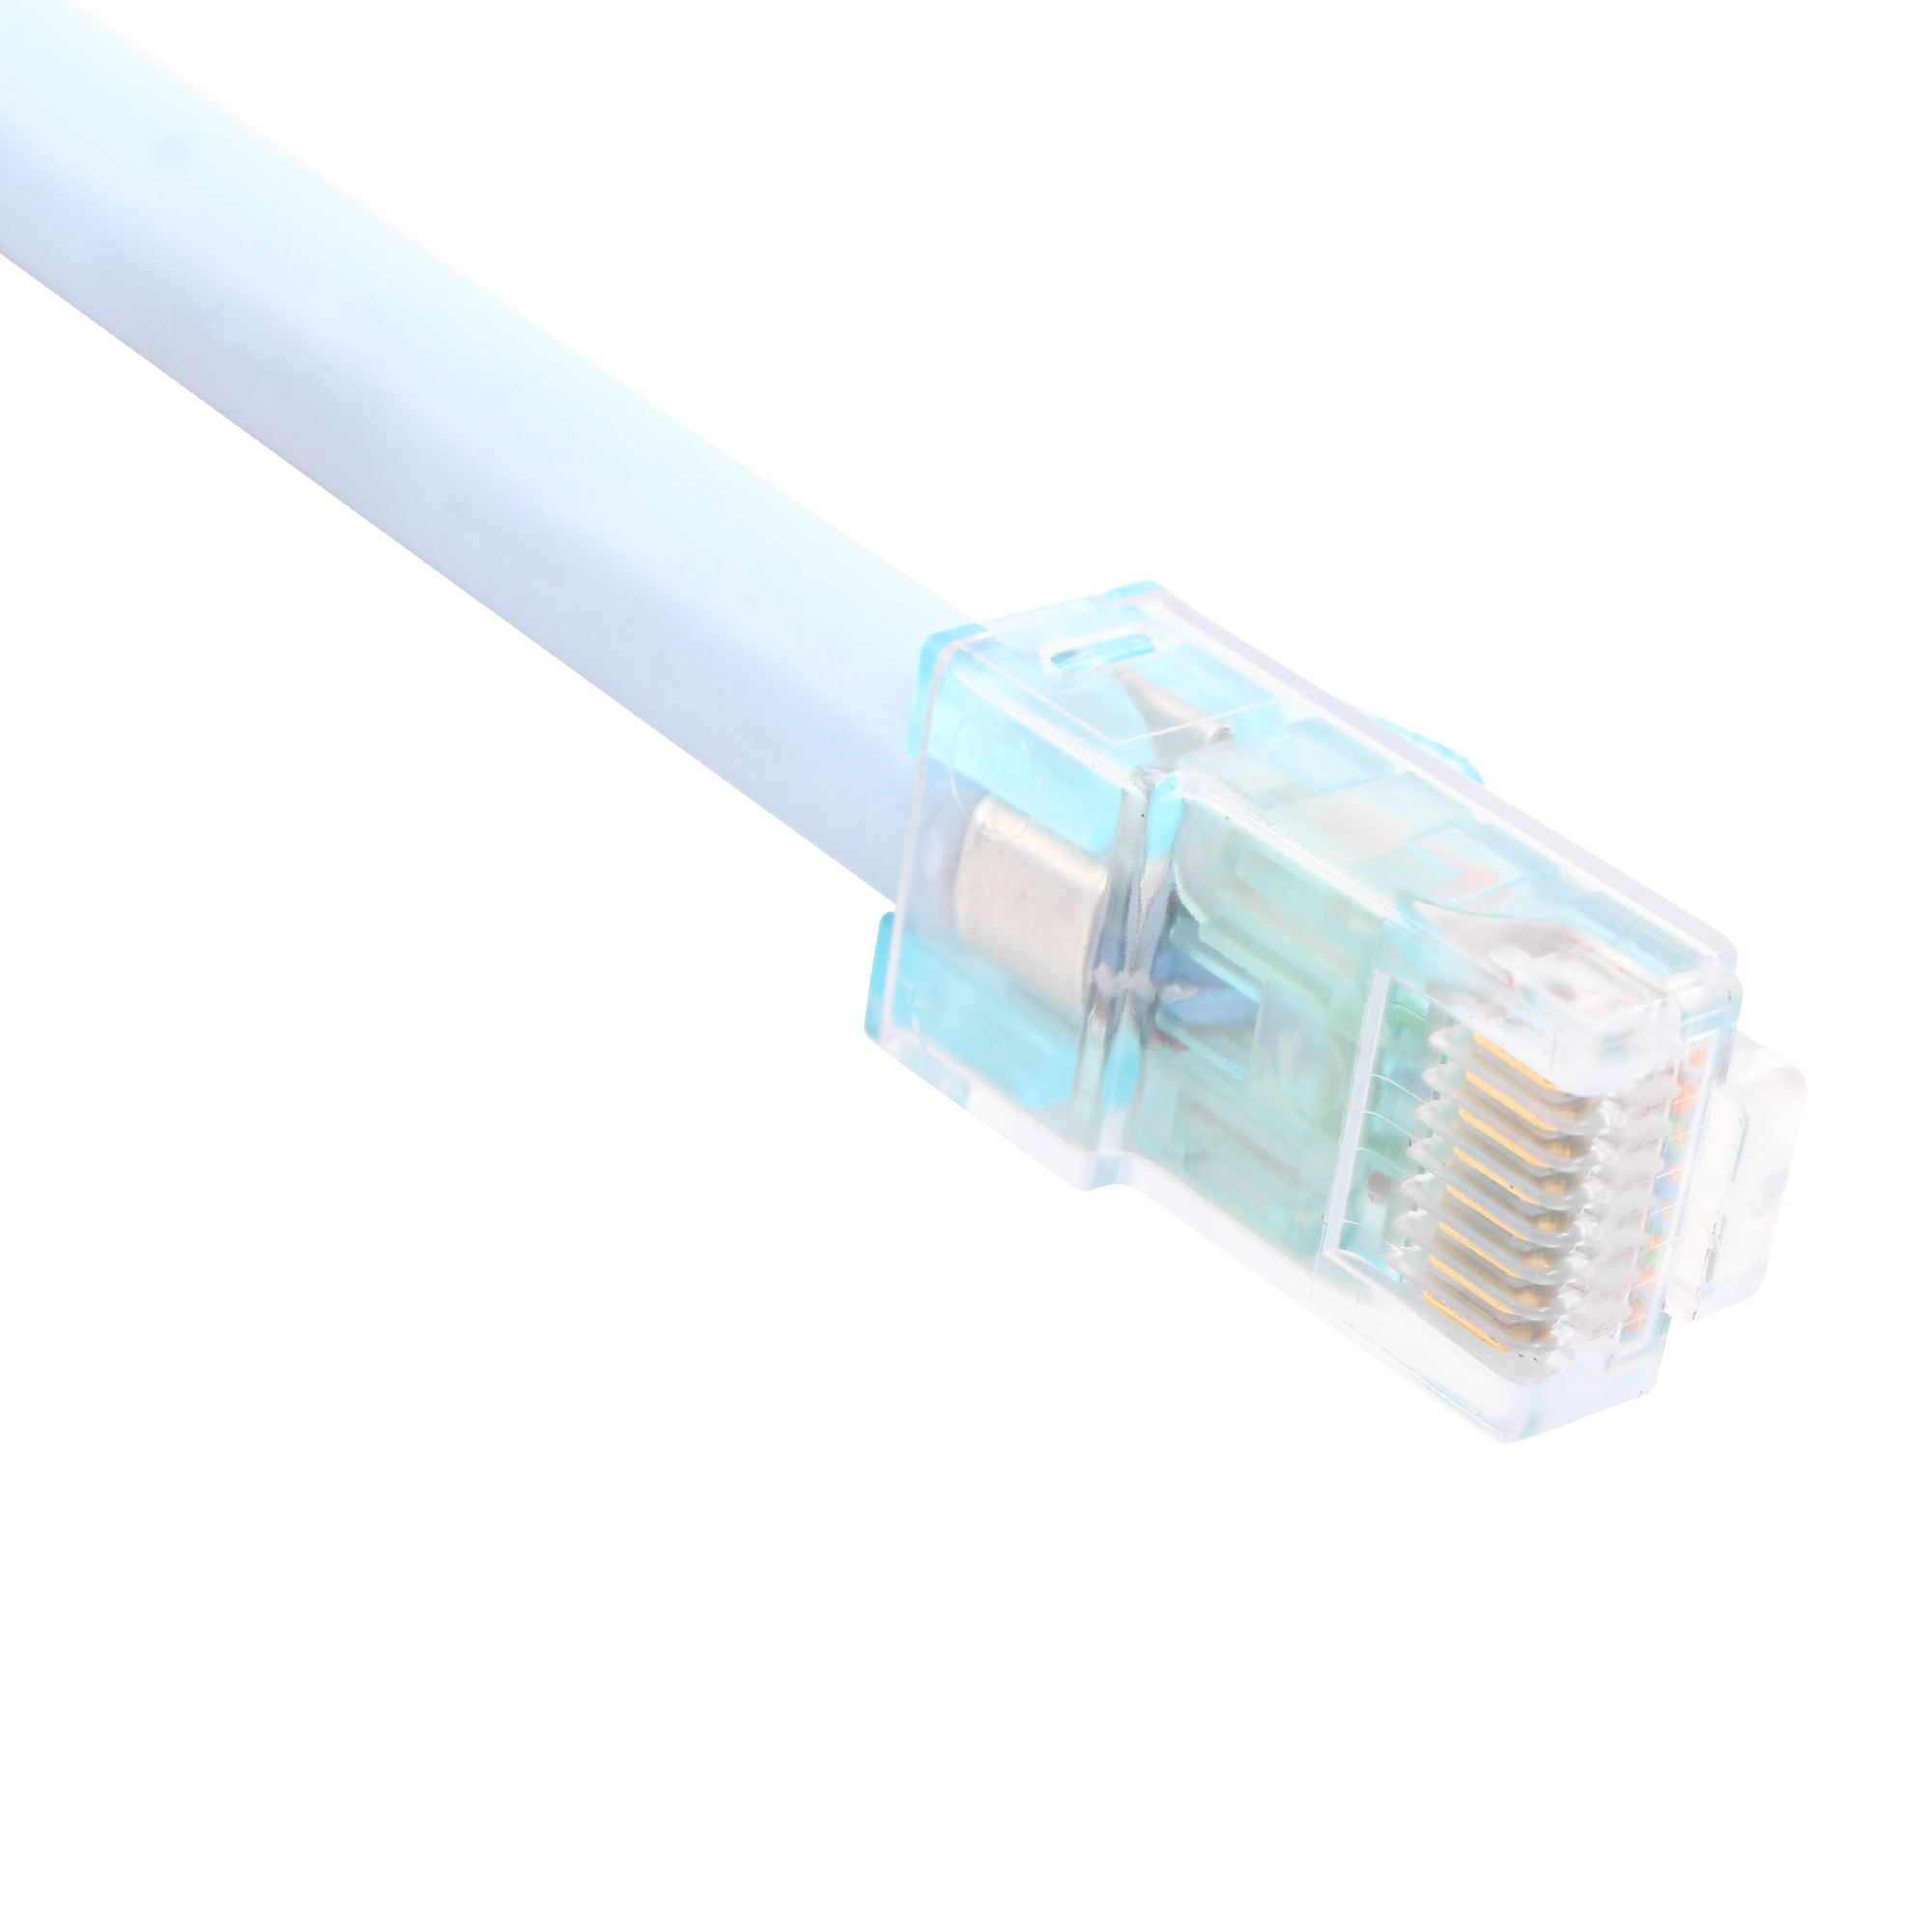 10 Meter Length 10 Meter Length Yellow Logilink CQ2097S Cat.6 S//FTP PIMF PrimeLine Patch Cable Yellow